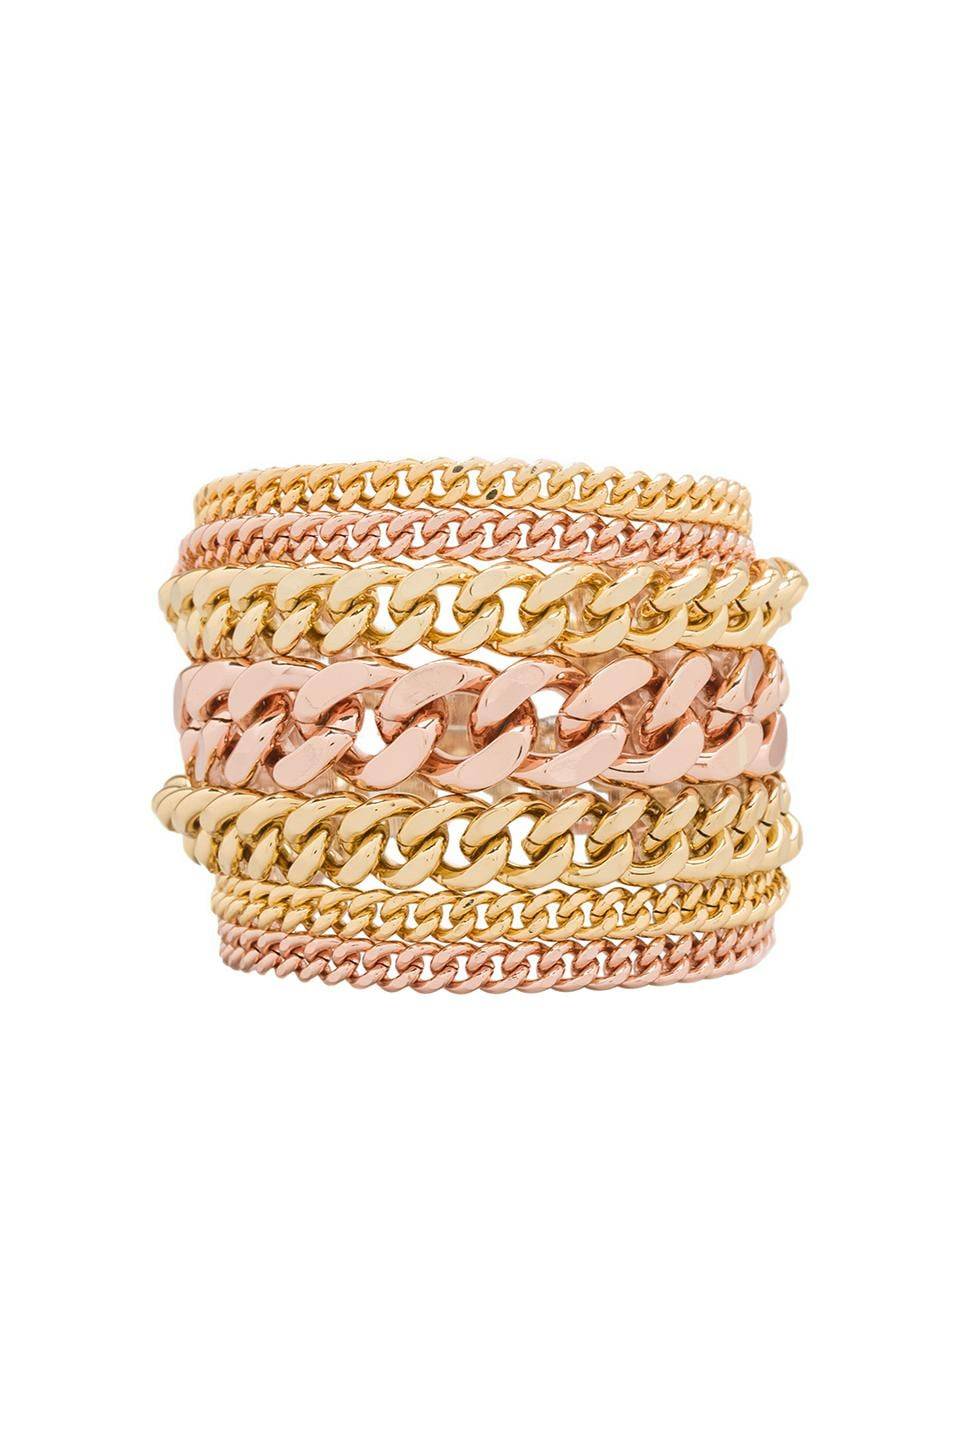 Giles & Brother Multi Chain Bracelet in Rose Gold/Gold